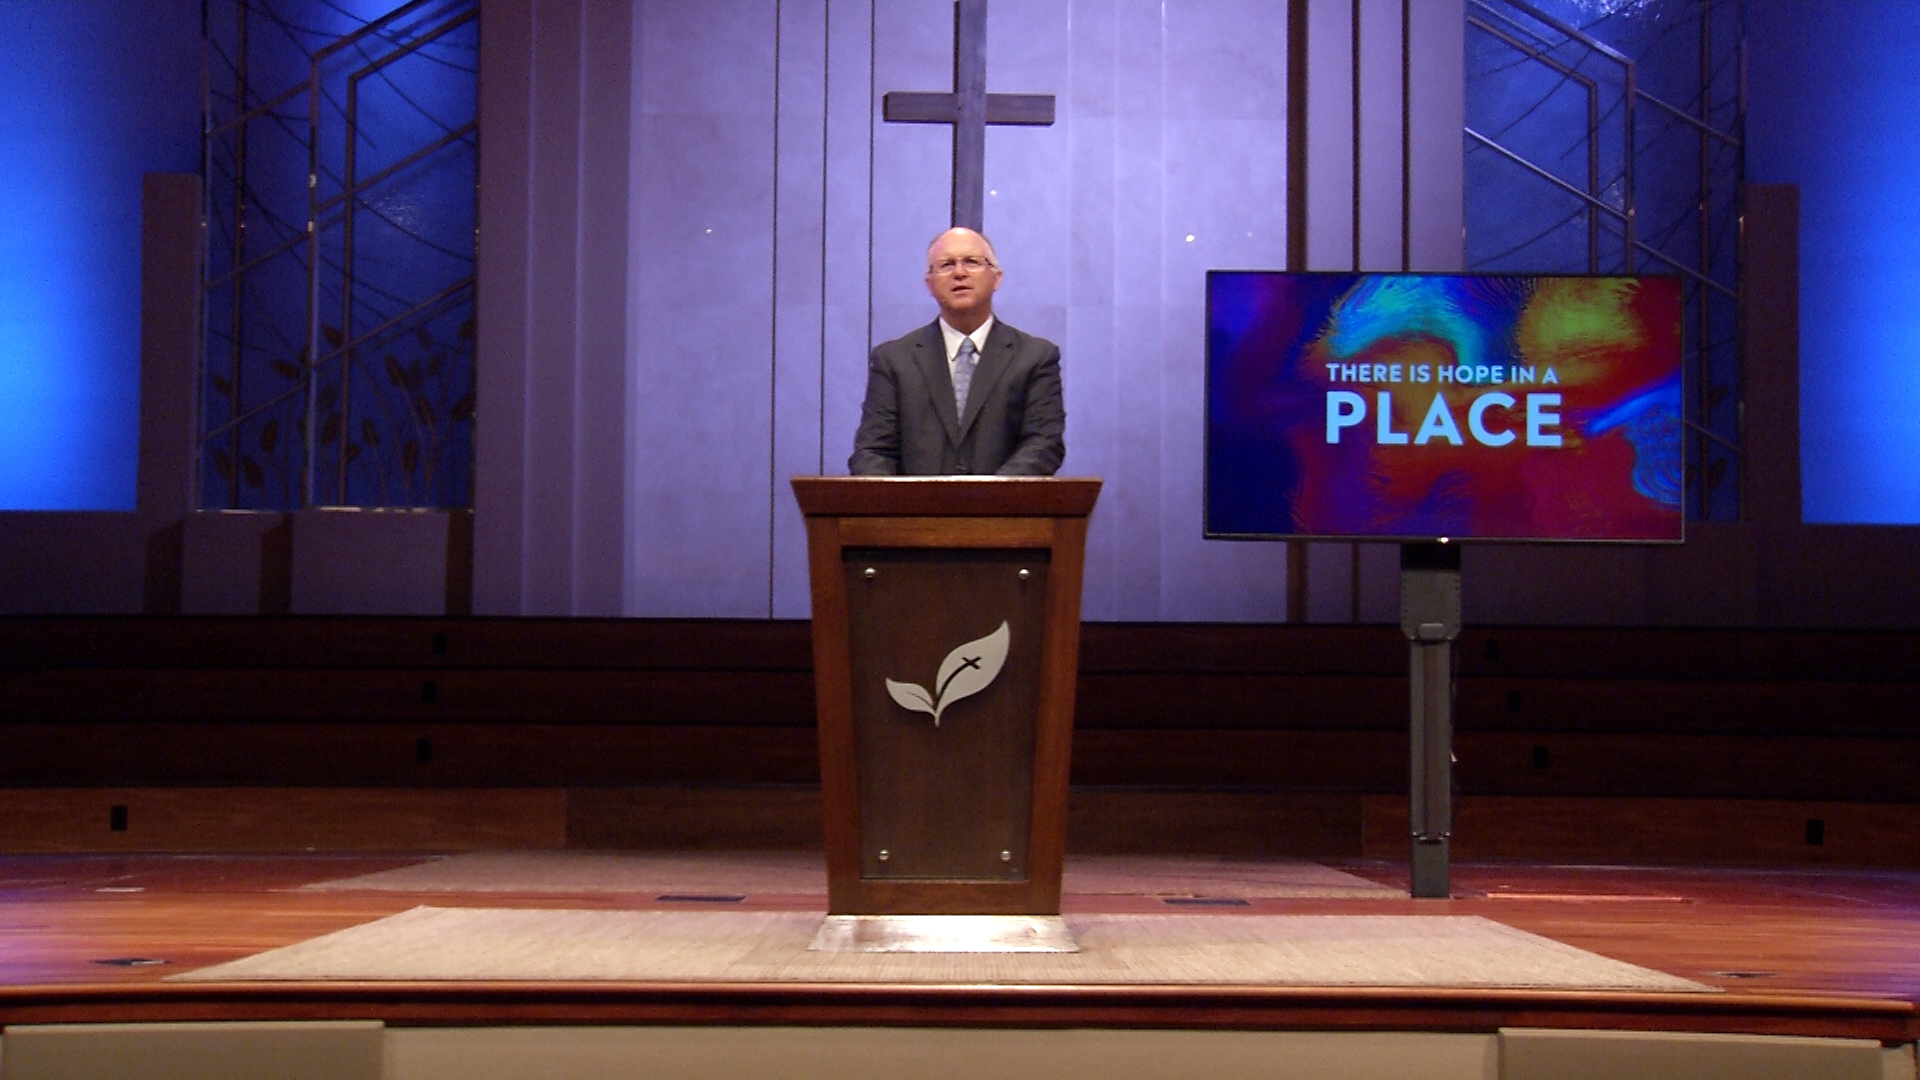 Pastor Paul Chappell: Only Jesus Offers Hope